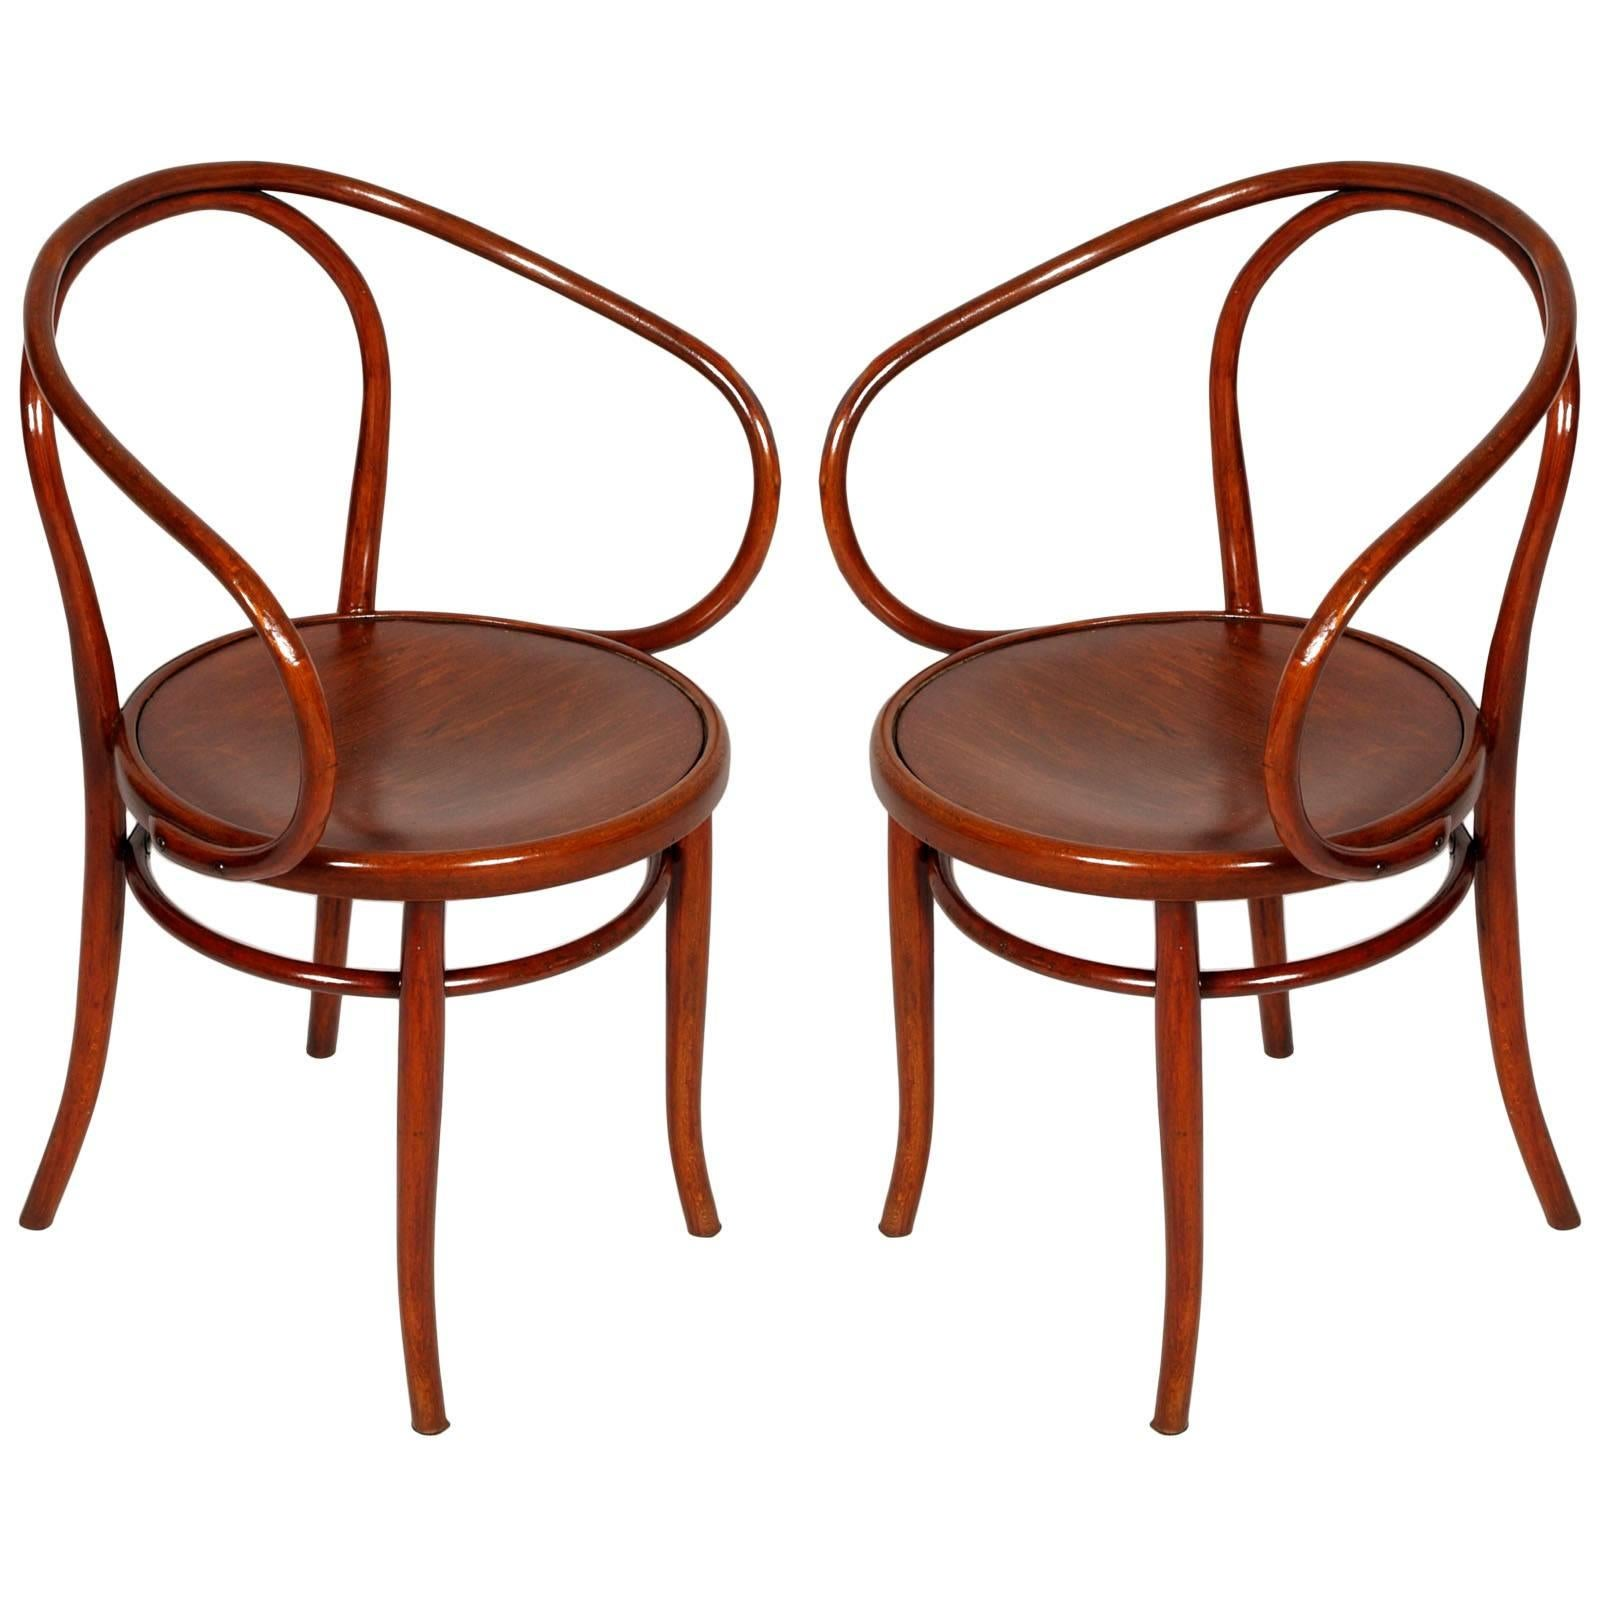 Late 19th Century Pair of Bentwood B-9 Armchairs by Michael Thonet Restored For Sale  sc 1 st  1stDibs & Late 19th Century Pair of Bentwood B-9 Armchairs by Michael Thonet ...